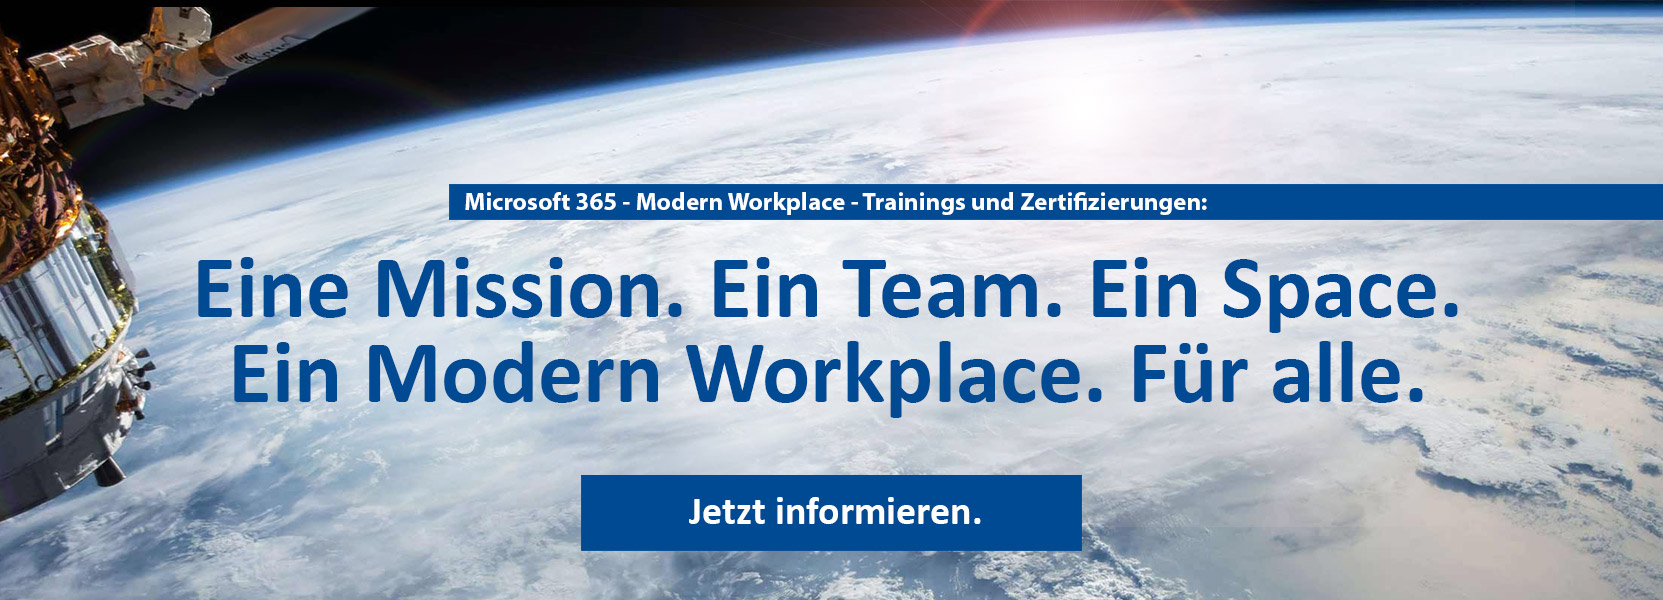 New Horizons - Microsoft 365 - Modern Workplace